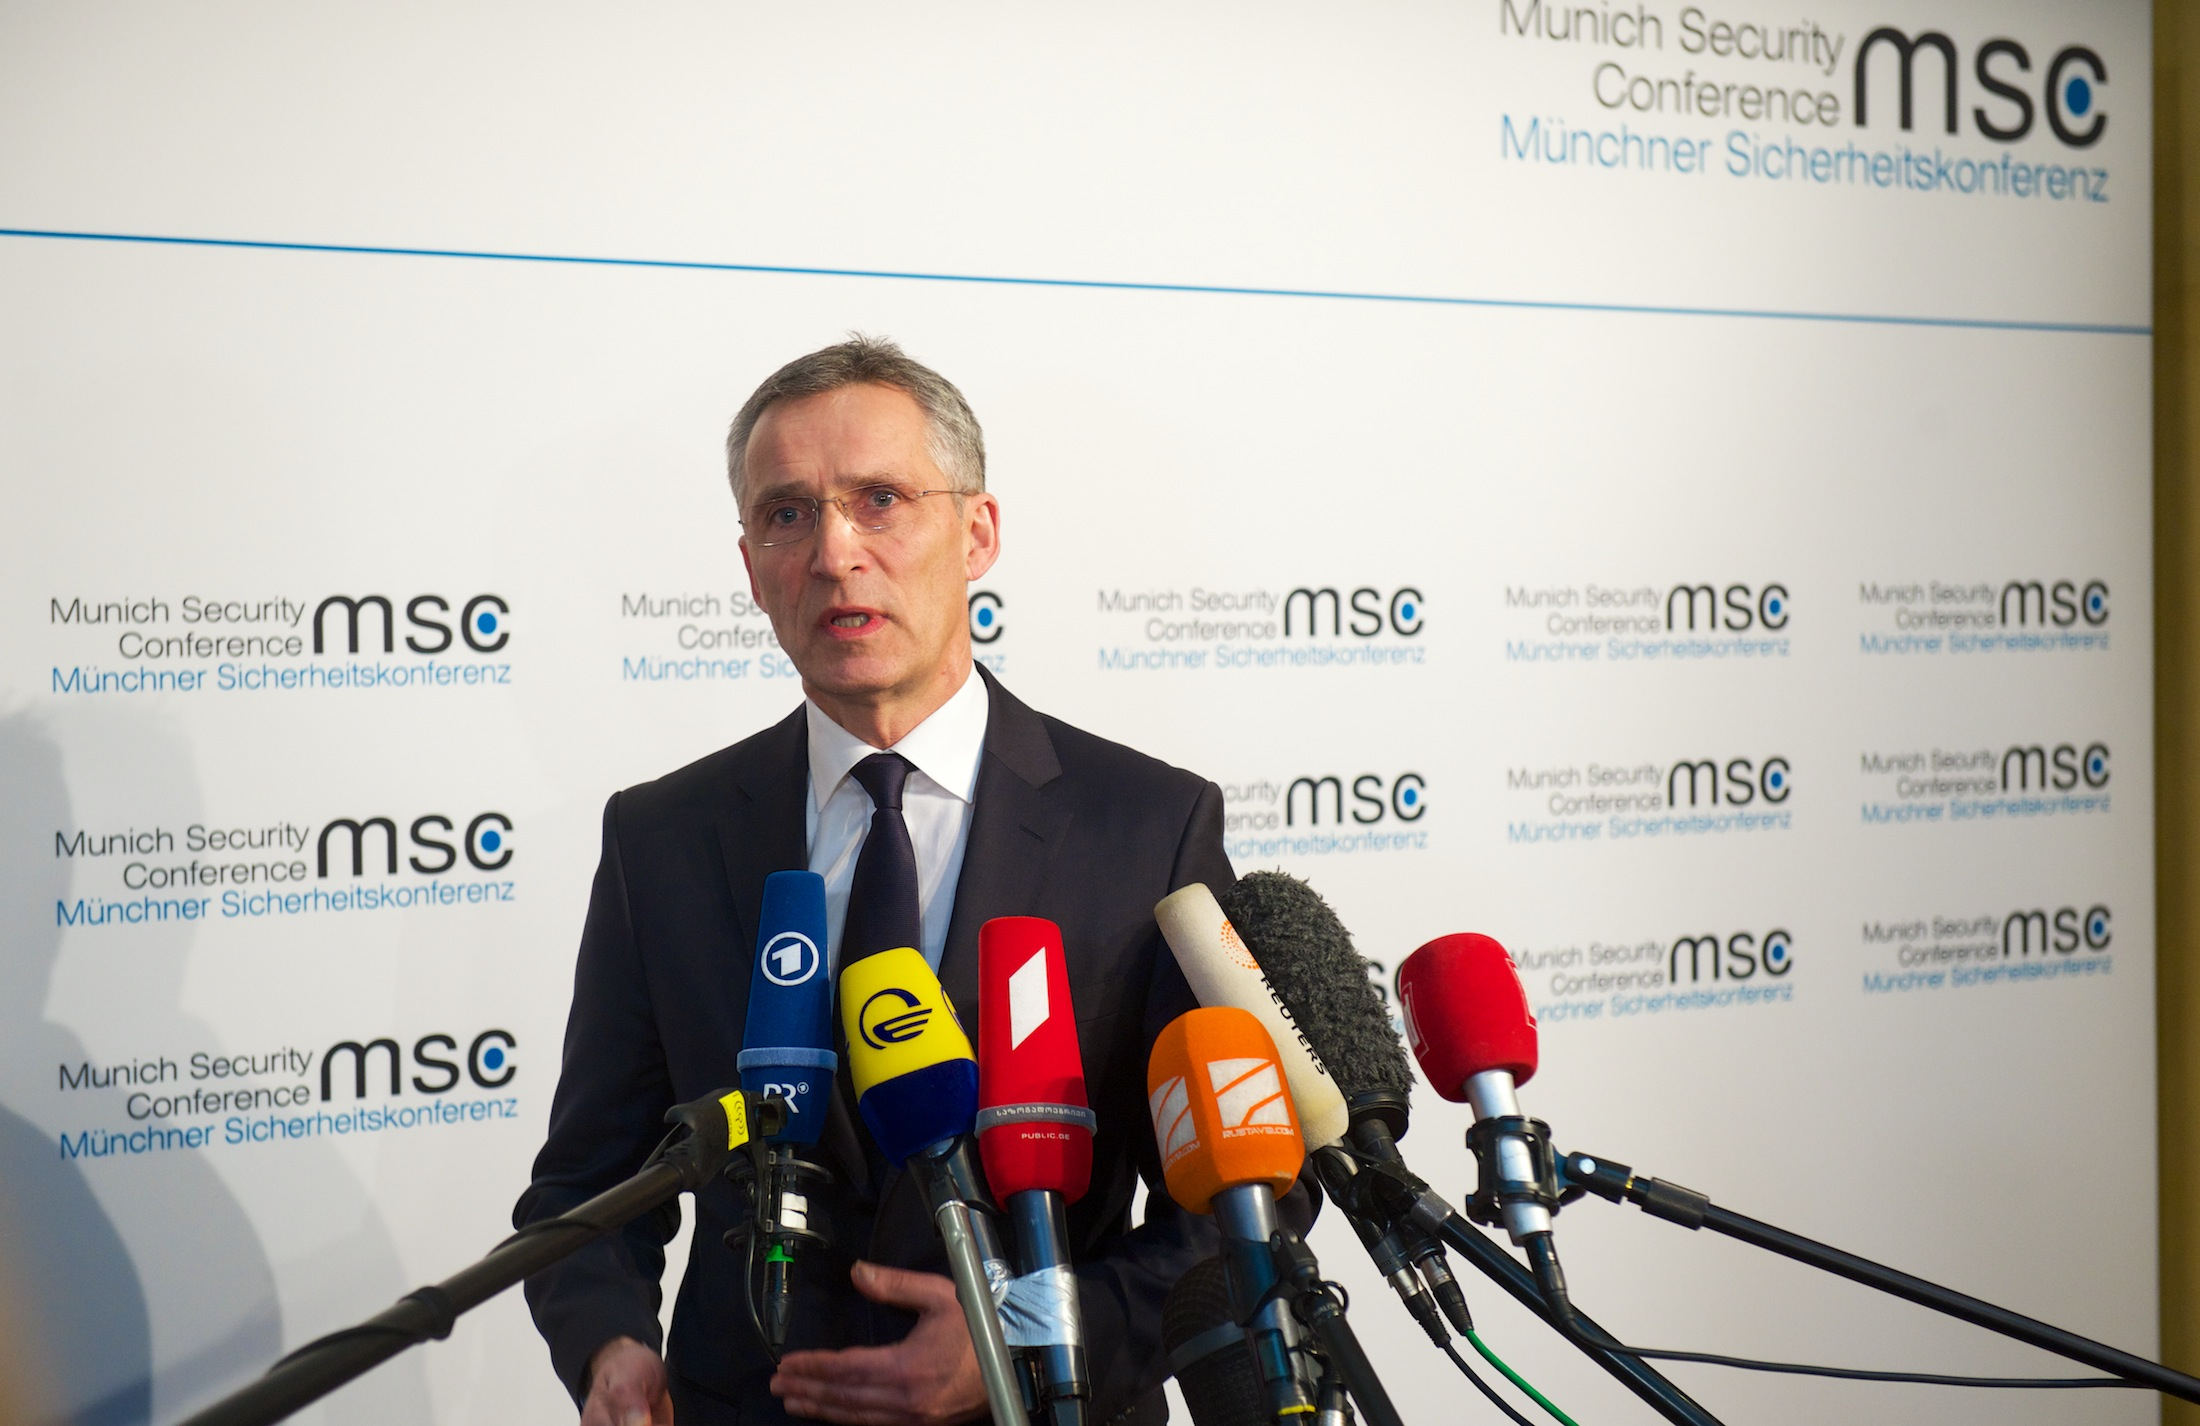 Doorstep statement by NATO Secretary General Jens Stoltenberg ahead of the Munich Security Conference